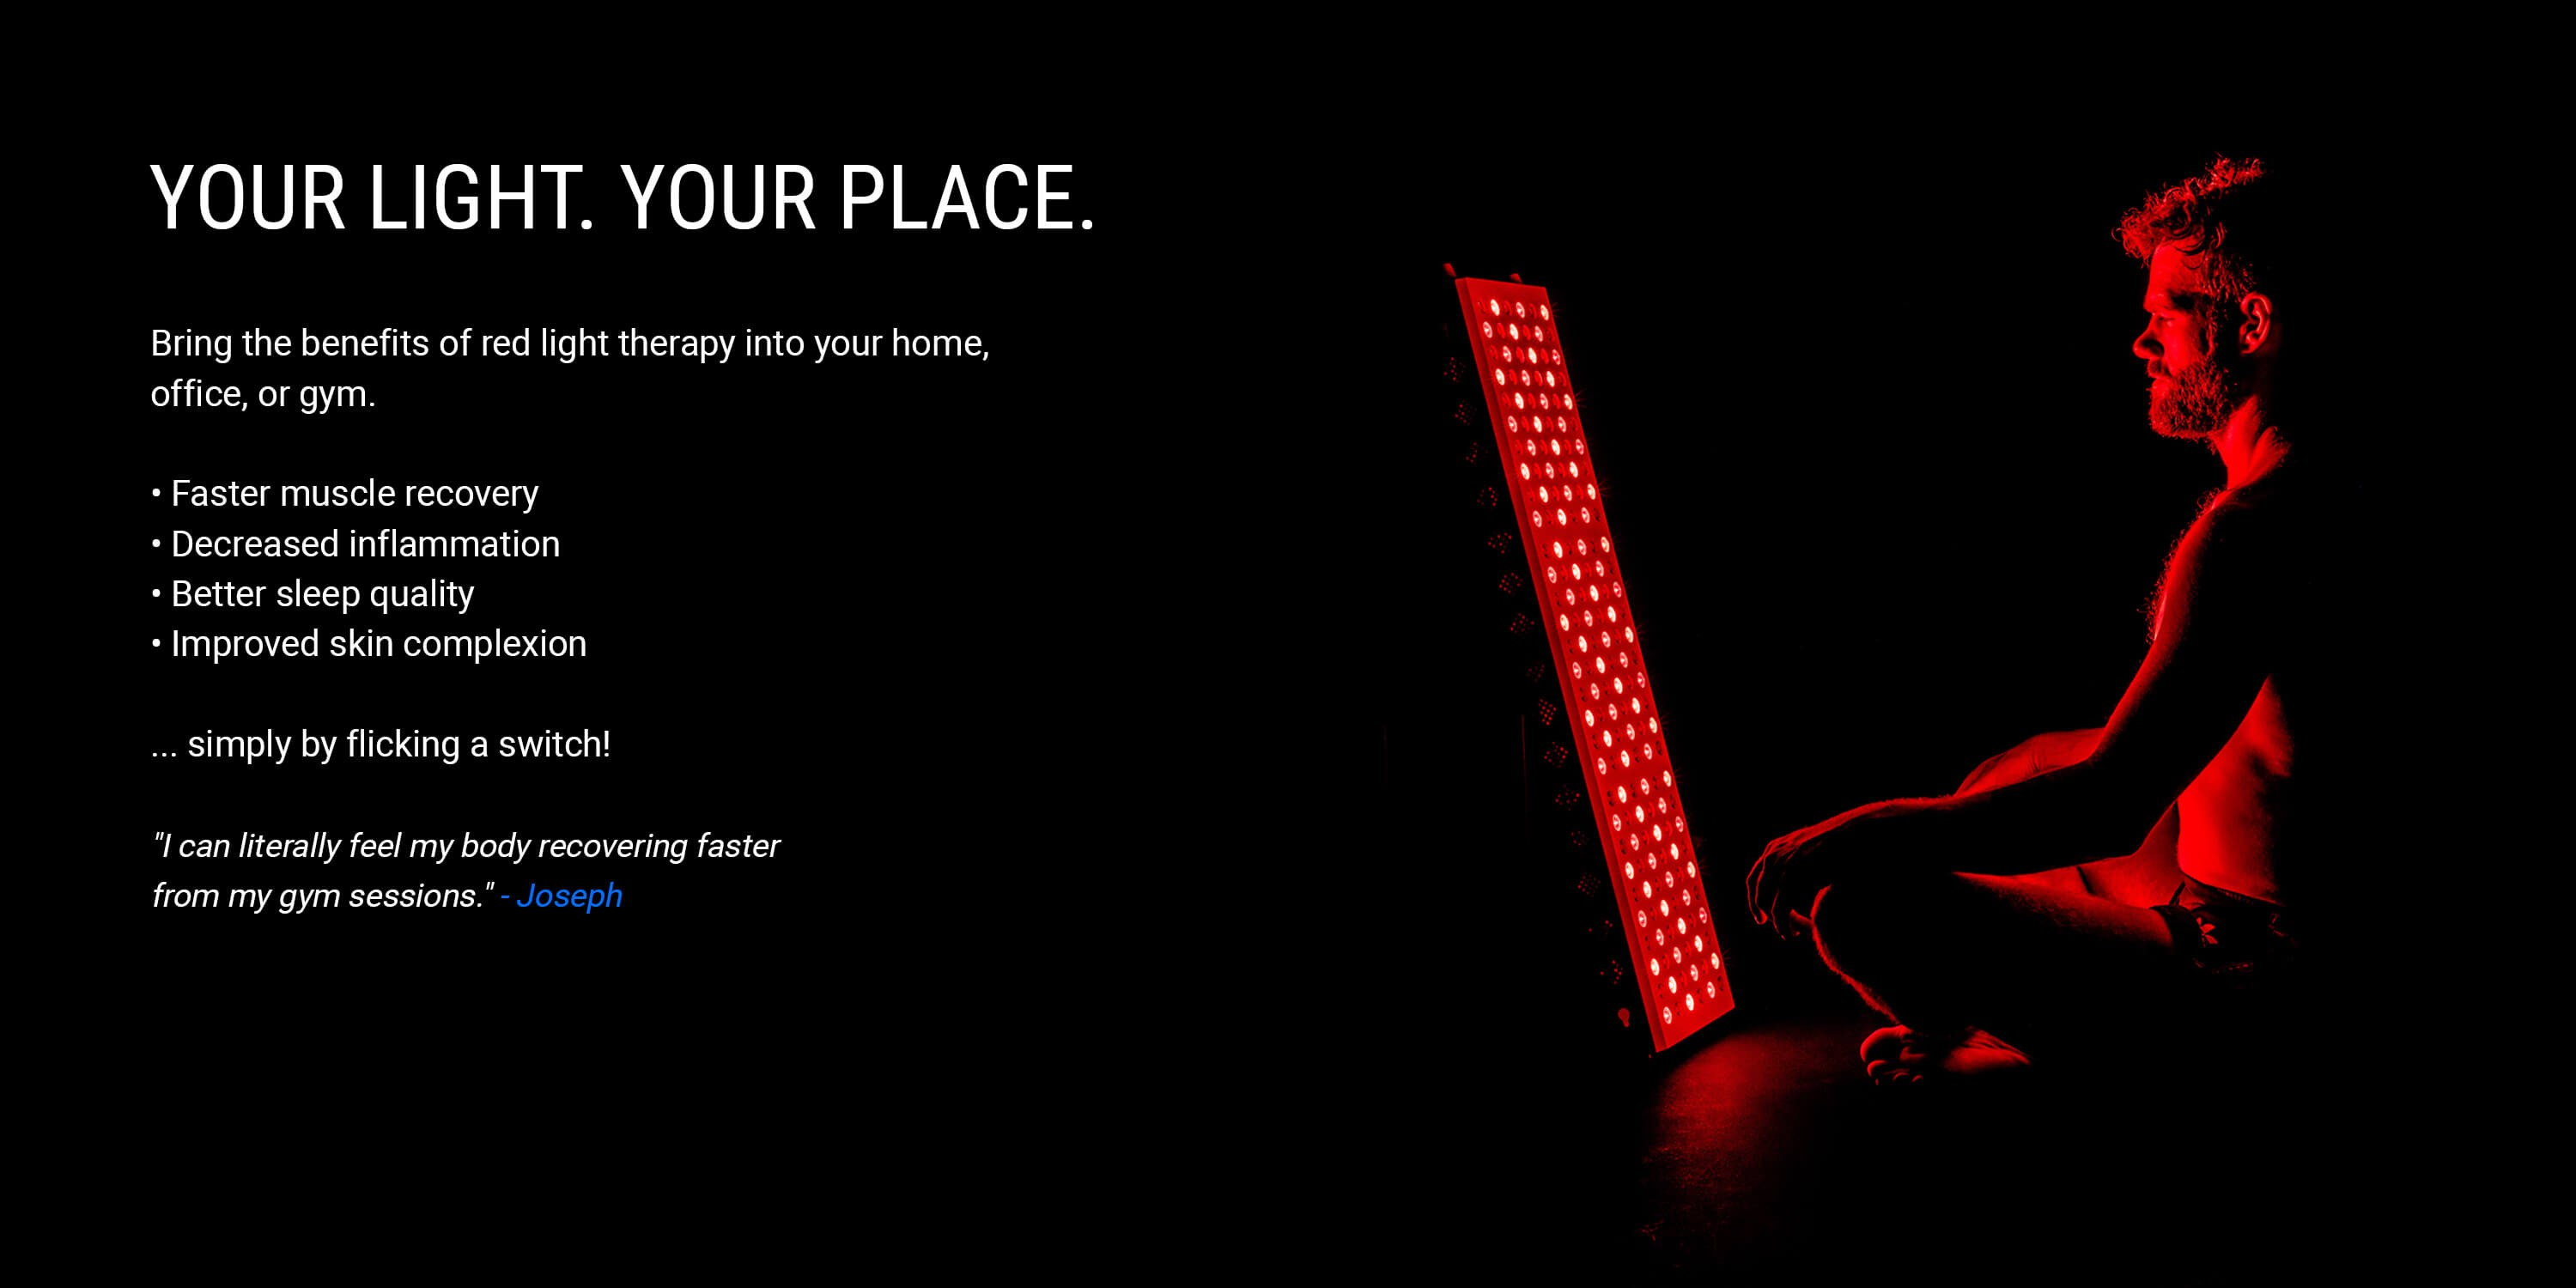 Bring the benefits of red light therapy into your home, office, or gym.